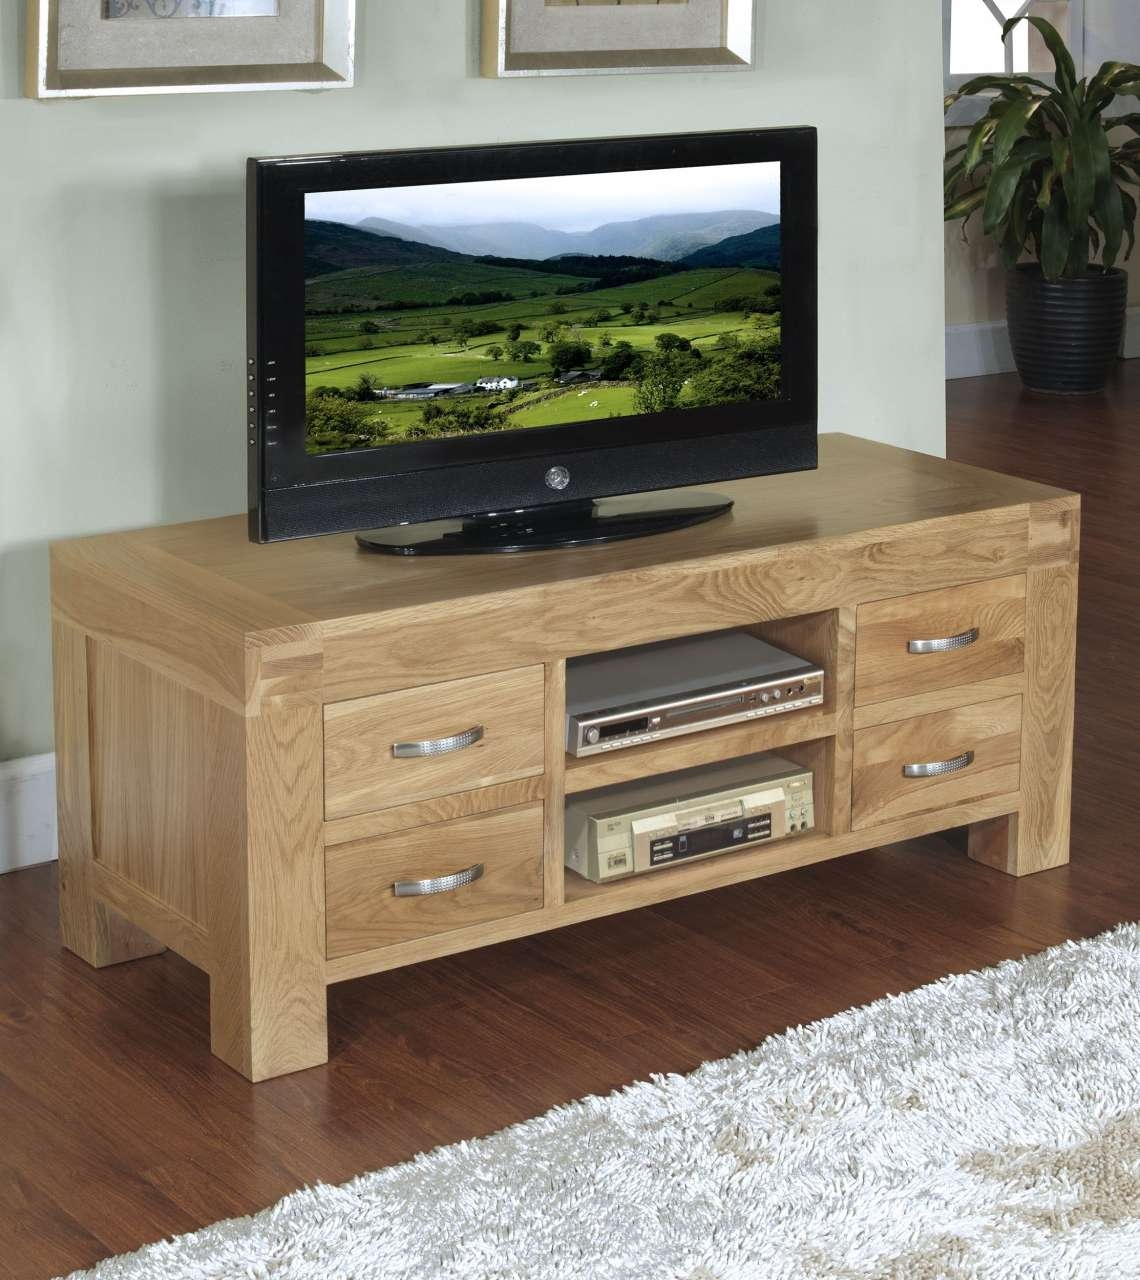 Oak Tv Cabinet – Cabinet Design Ideas With Oak Tv Cabinets With Doors (View 16 of 20)